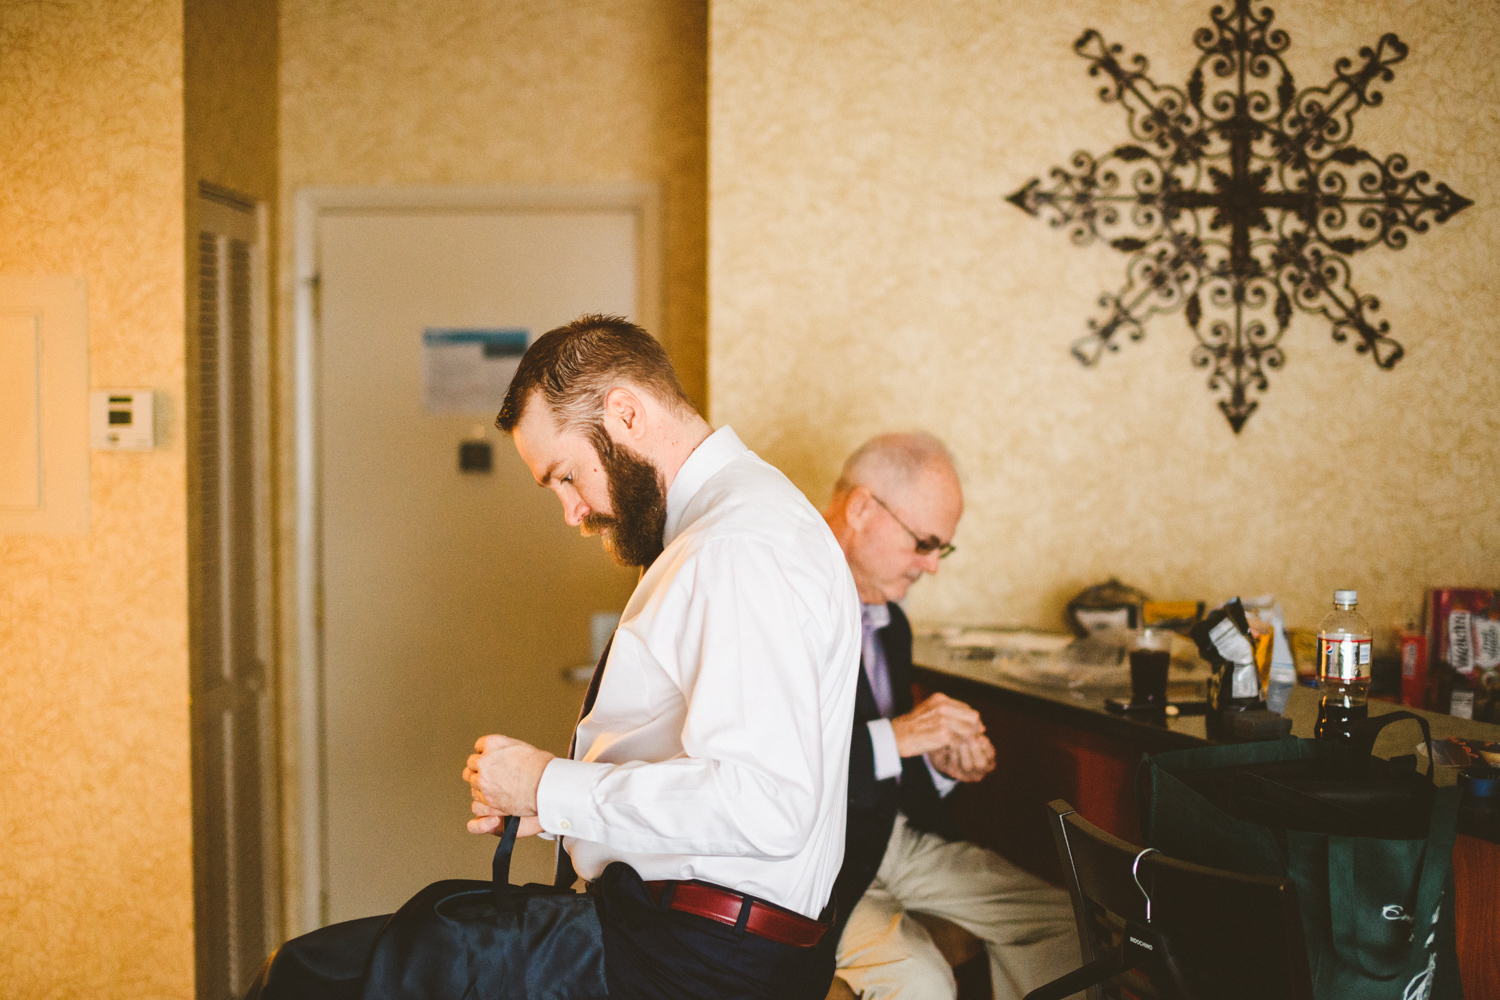 010 - groom and groom's father getting ready in groom's suite.jpg